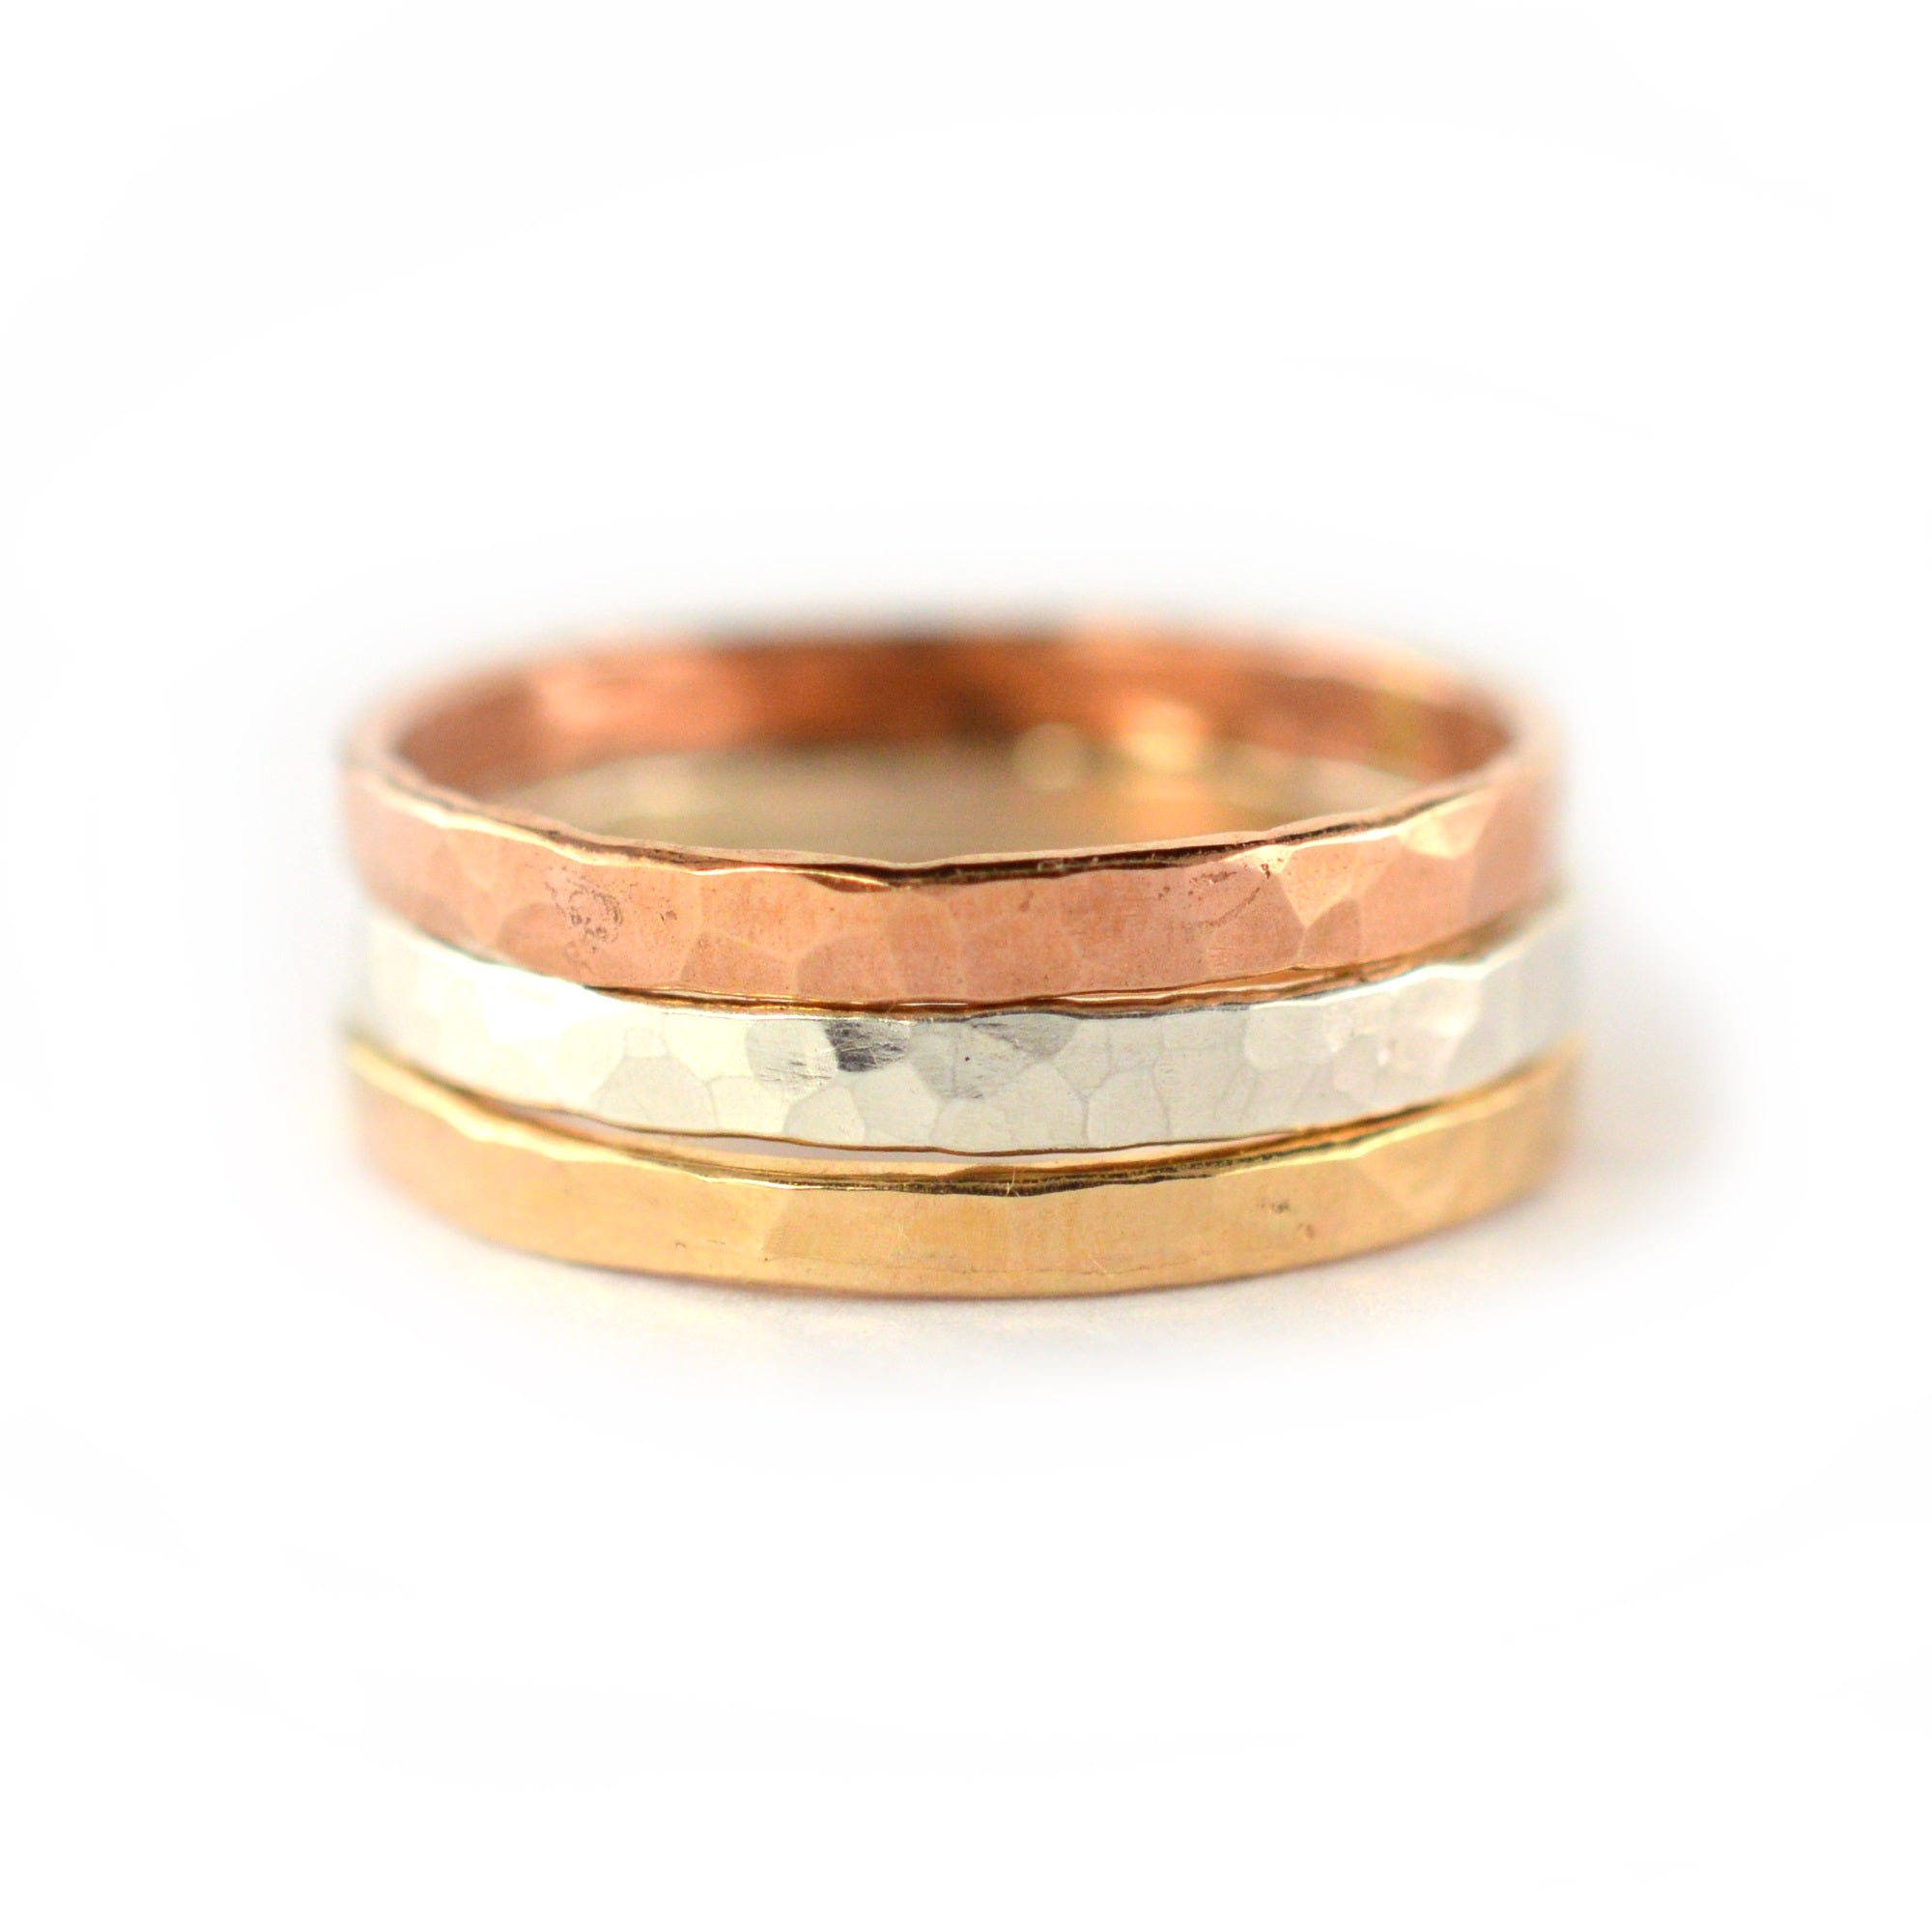 kong haywards our jewellery explore bespoke of coper hong img rings collection